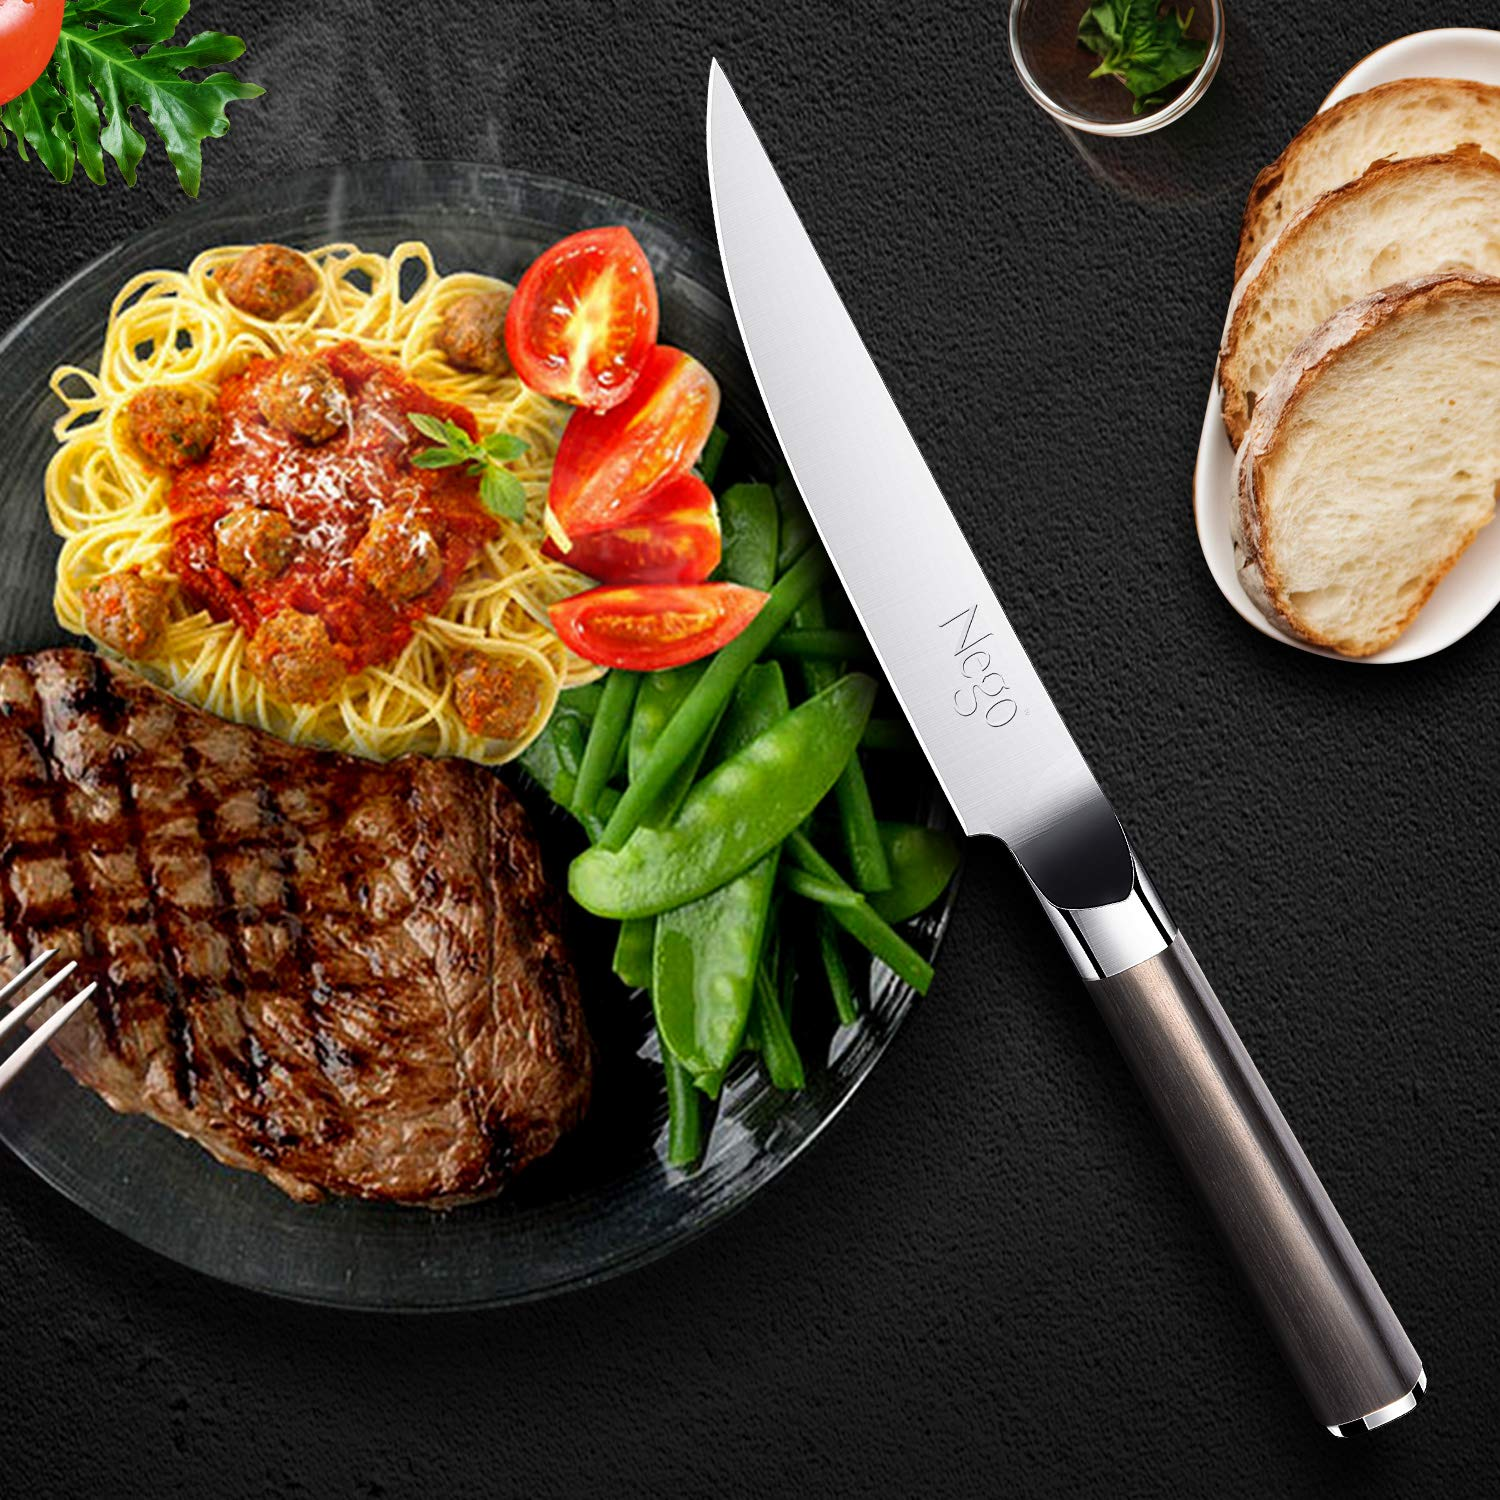 Steak Knives - 6Piece Steak Knife Set, 4.5 Inch Edge Blade Pointed Tip Table Knife German HC Stainless Steel Razor Sharpness Rust Protection Lightweight Neatly Slicing Classic Kitchen Cutlery by Nego (Image #2)